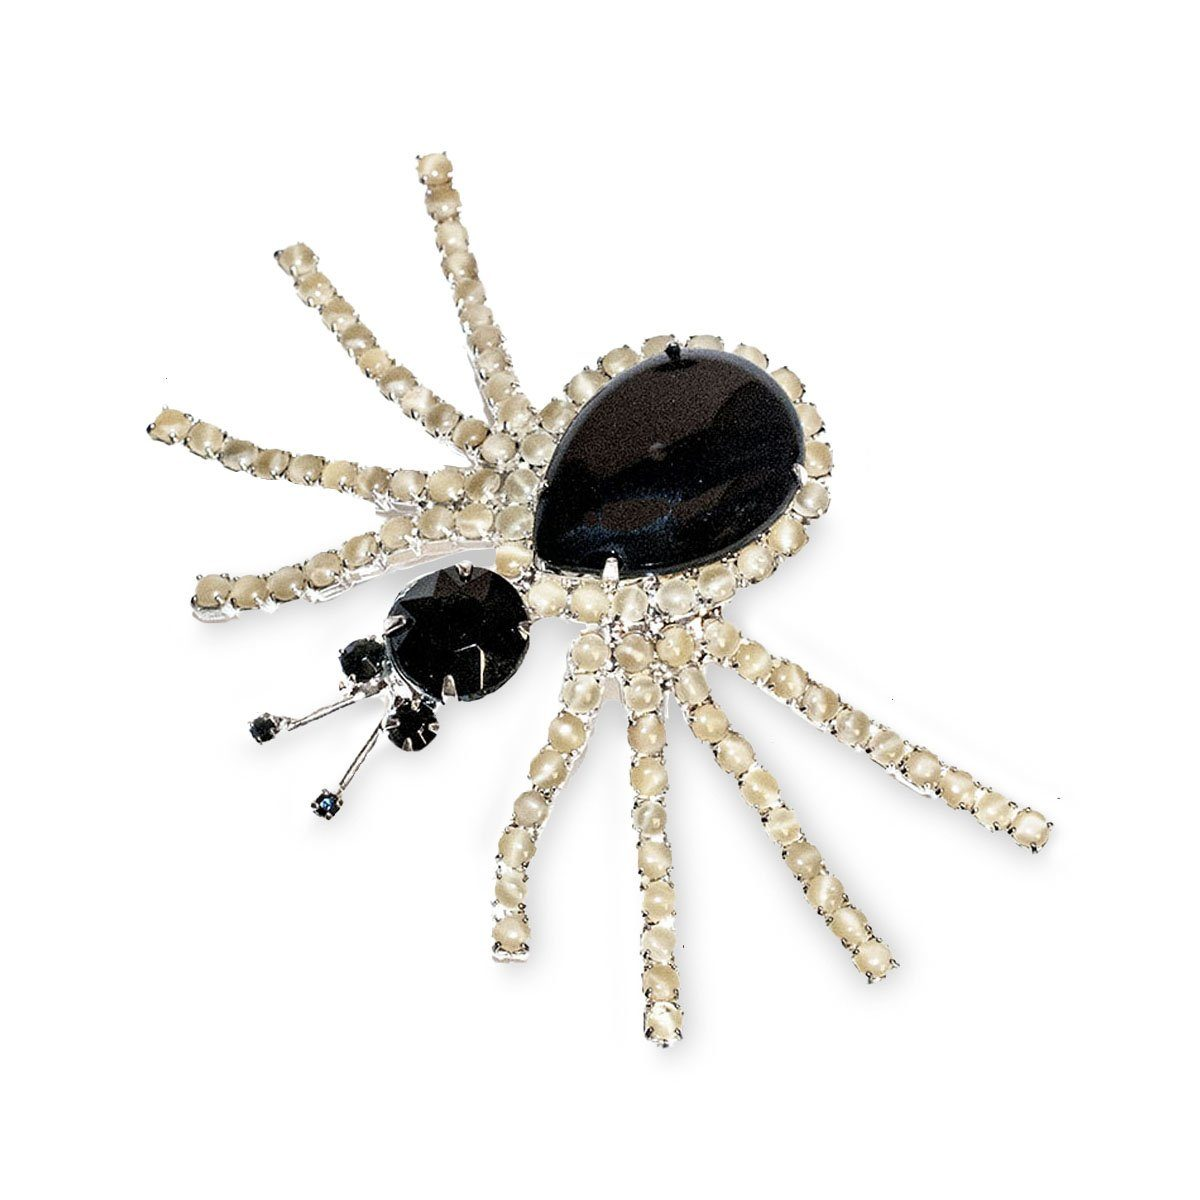 Vintage Spider Brooch, Black Faceted Glass & Faux Pearls